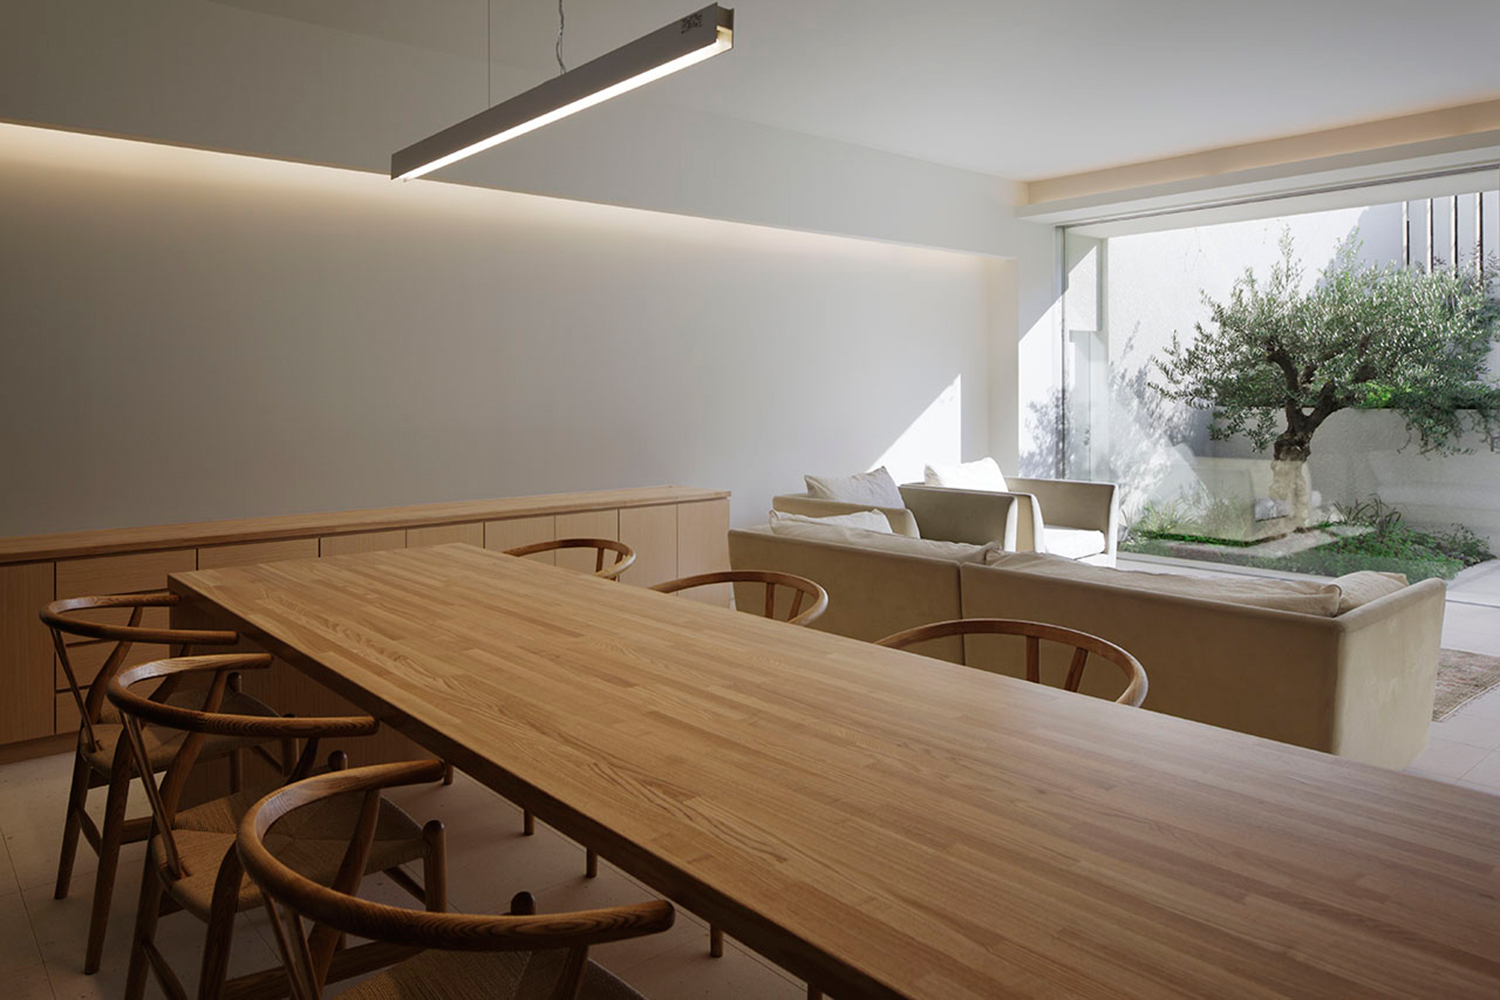 Dining.All lighting is not exposed by indirect lighting. }